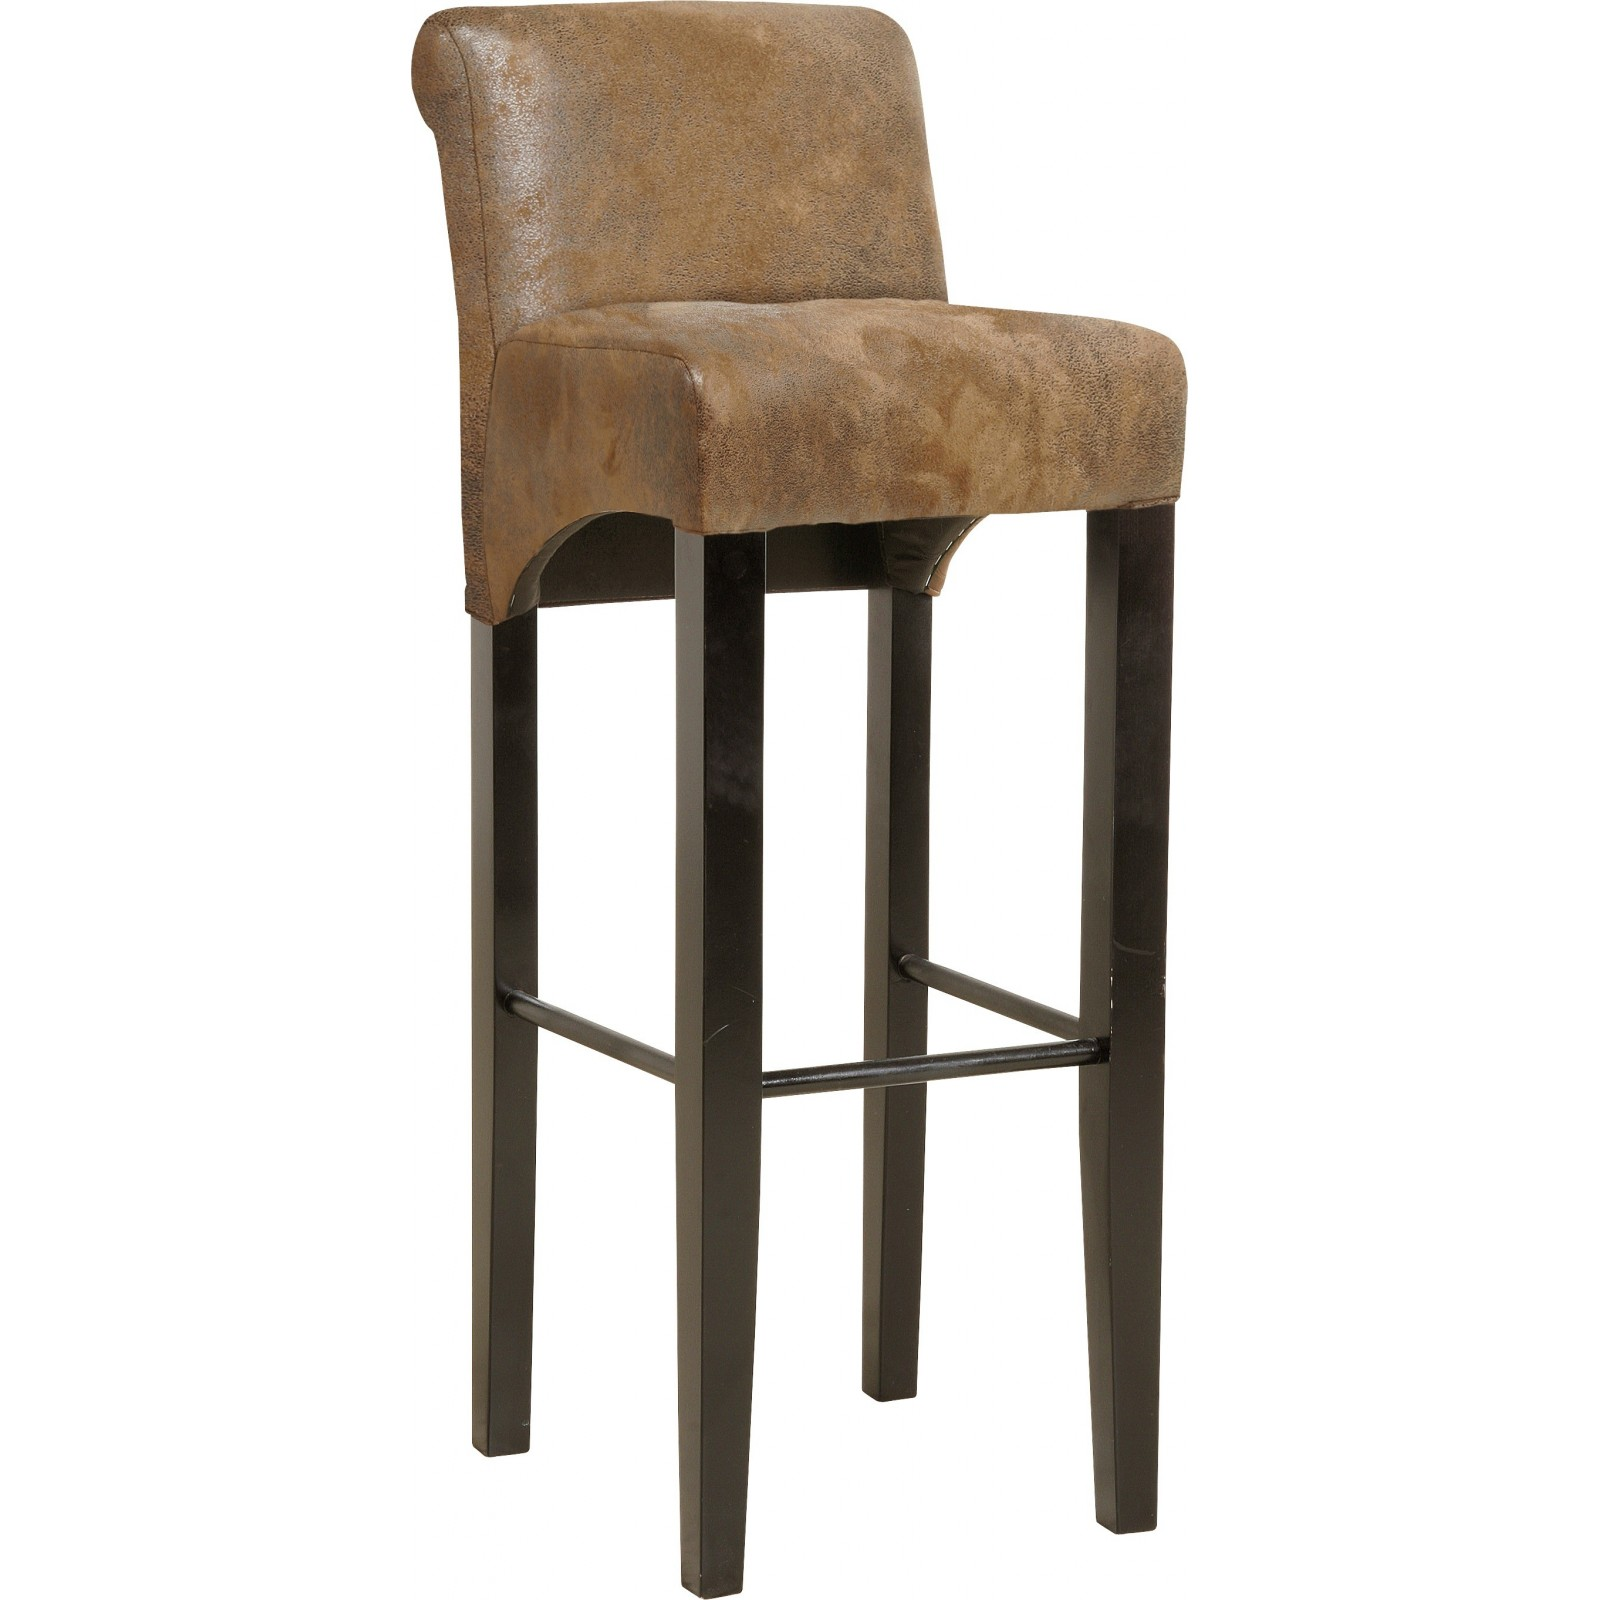 tabouret de bar vintage marron isis kare design. Black Bedroom Furniture Sets. Home Design Ideas